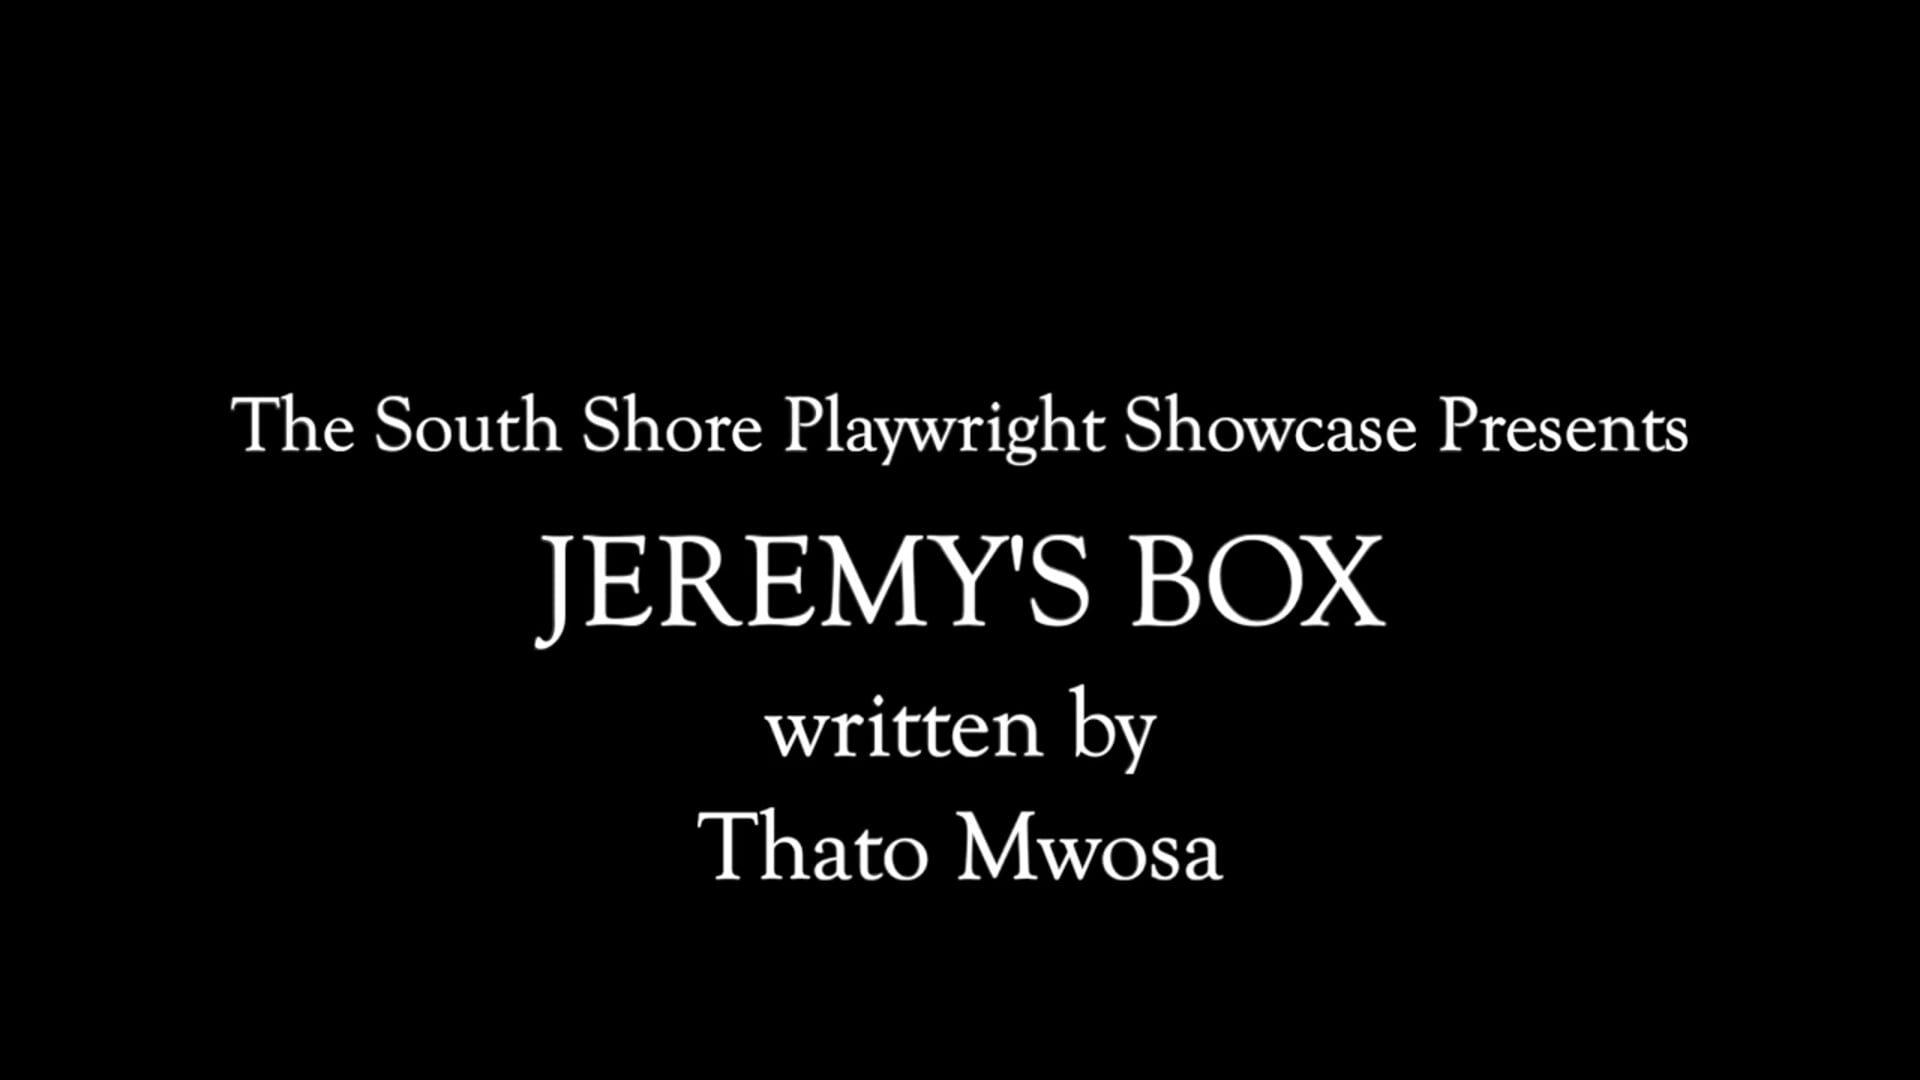 Jeremy's Box by Thato Mwosa (South Shore Playwright Showcase)